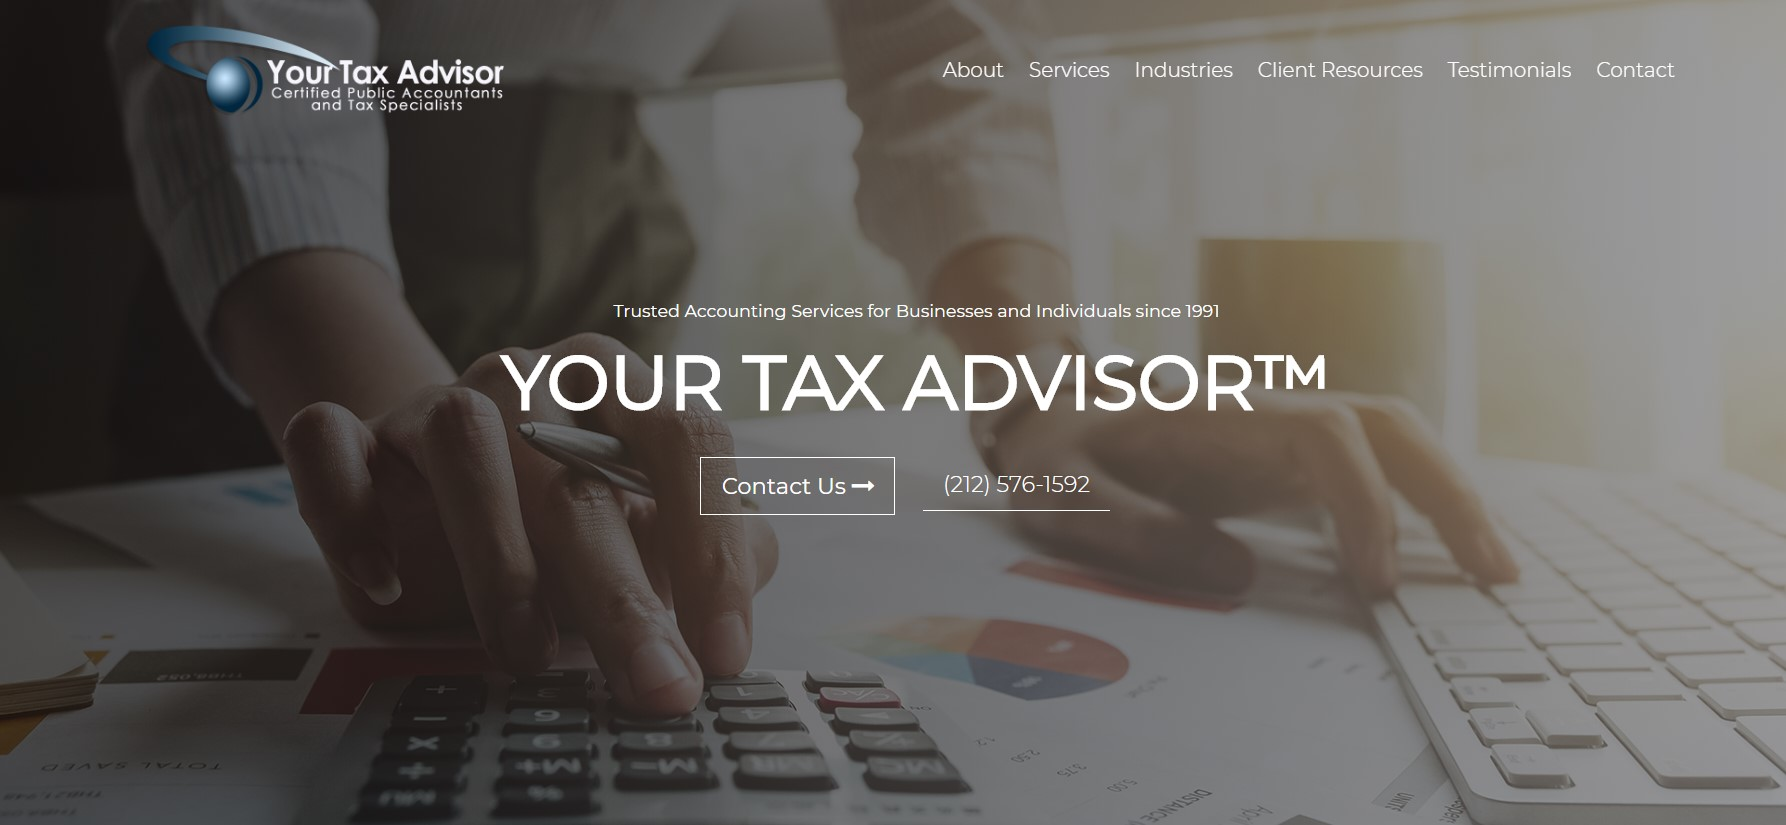 your tax advisor cpa firm in new york